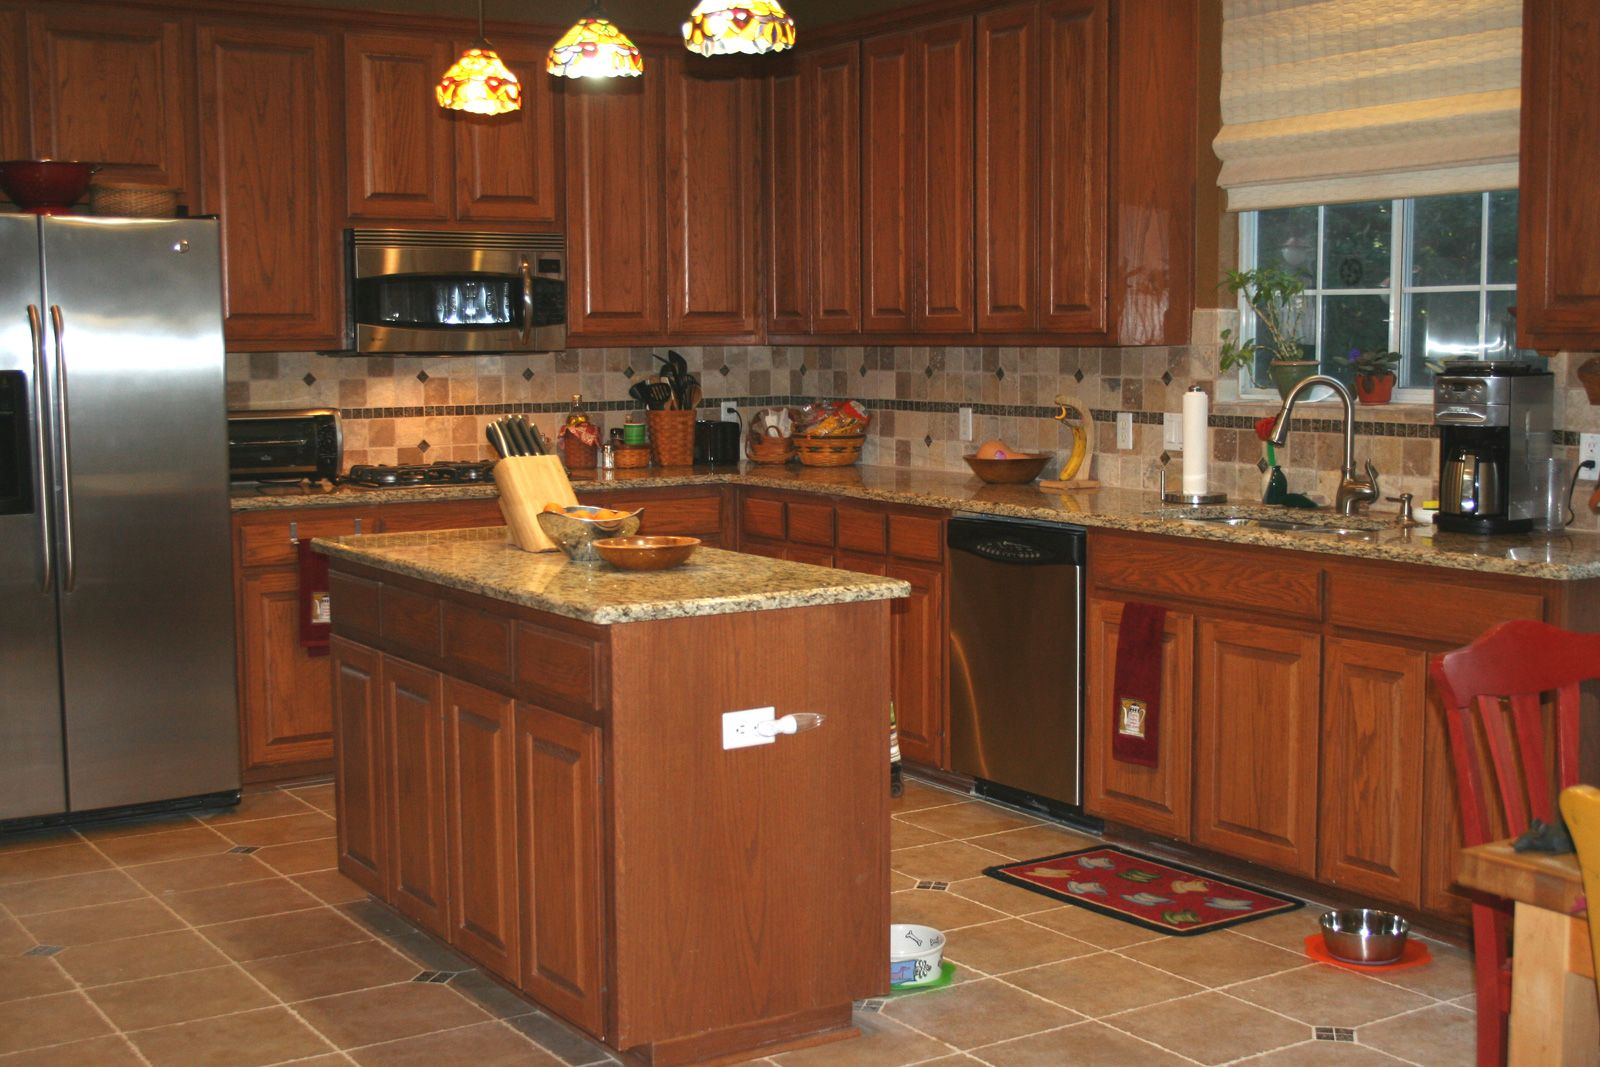 Back Splash Designs For Kitchen With Beige And Brown Granite Counter Tops With Oak Cabinets